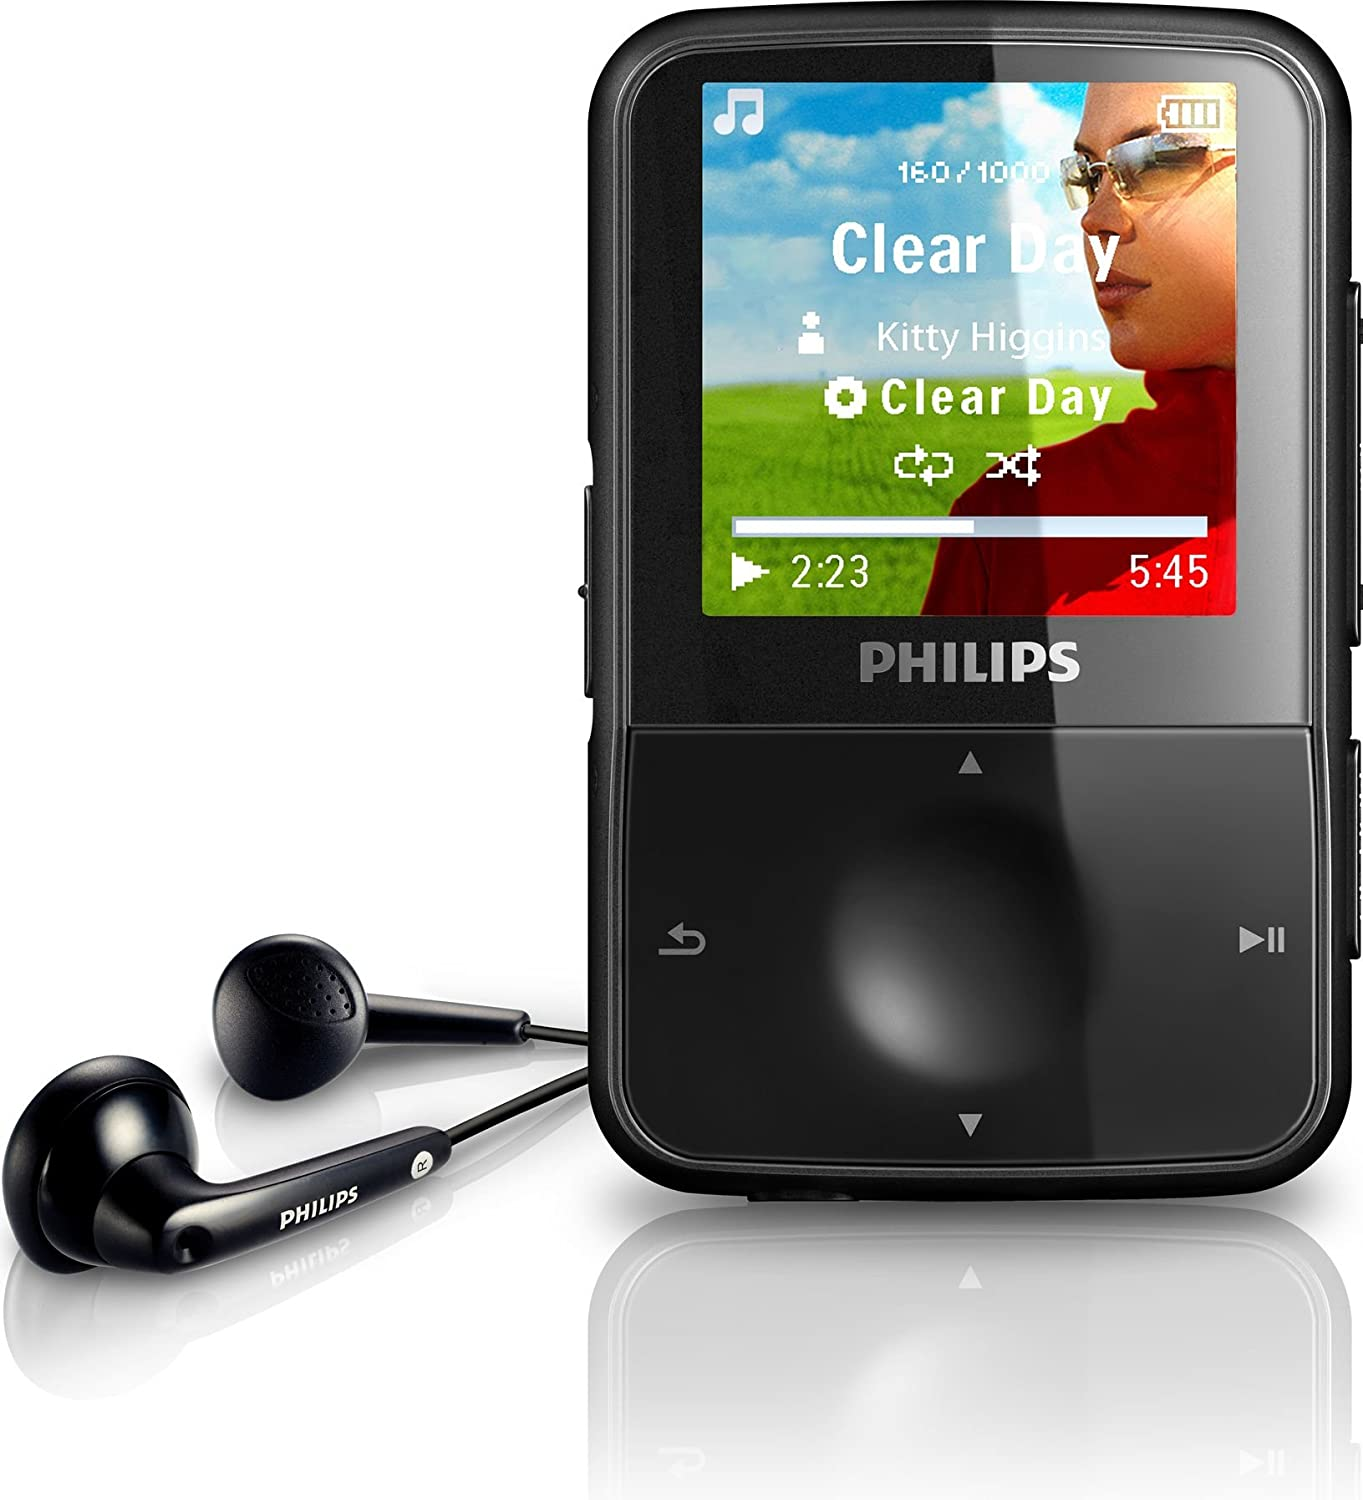 philips gogear sa060 manual ultimate user guide u2022 rh megauserguide today philips gogear mix 2gb mp3 player manual Philips GoGear 2GB Upgrade